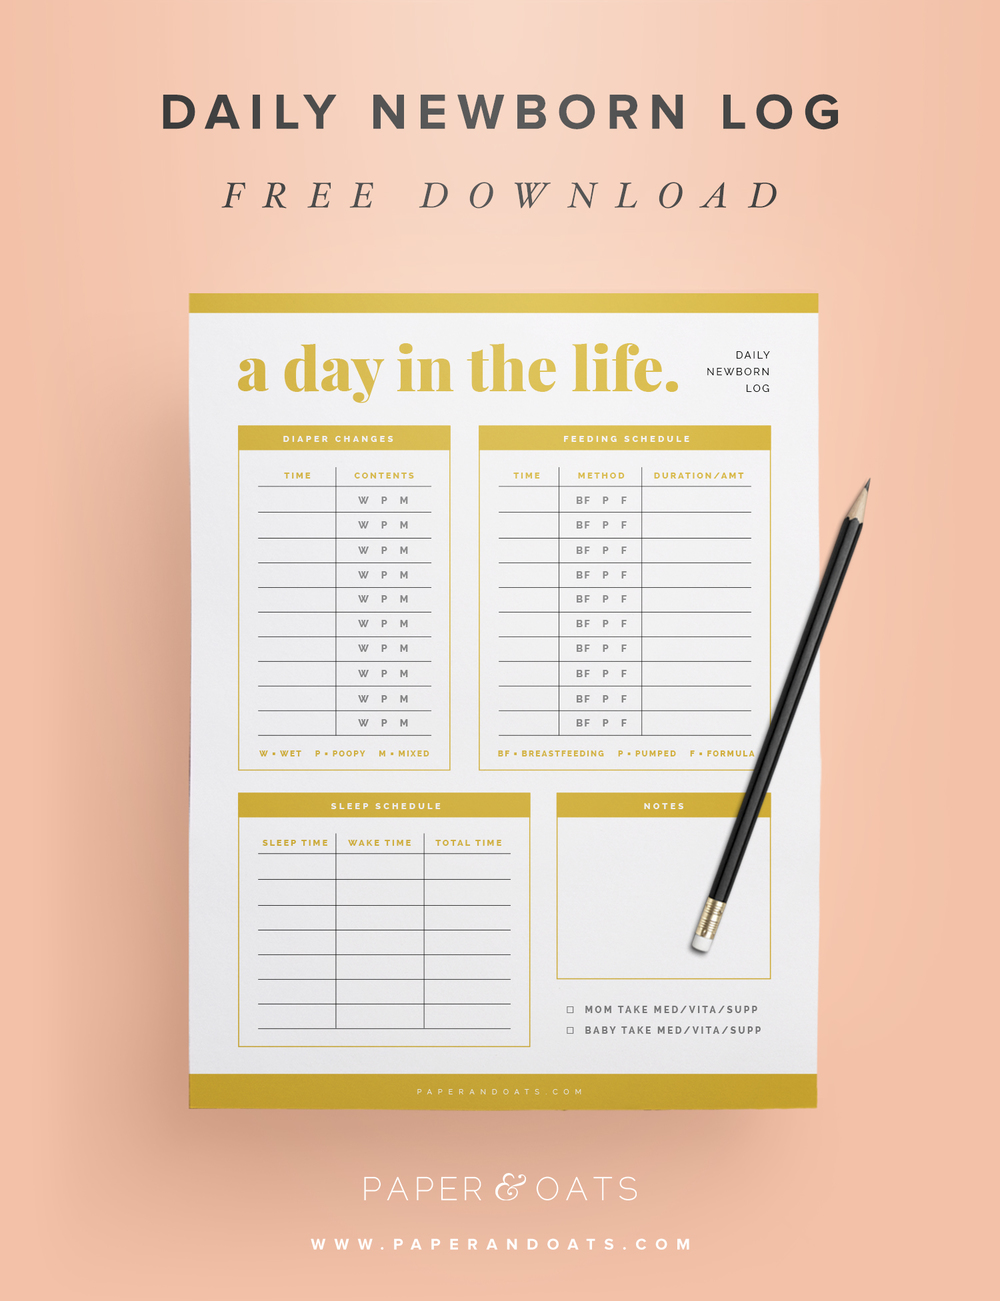 Free download – Daily Newborn Log from the Newborn Planning Kit